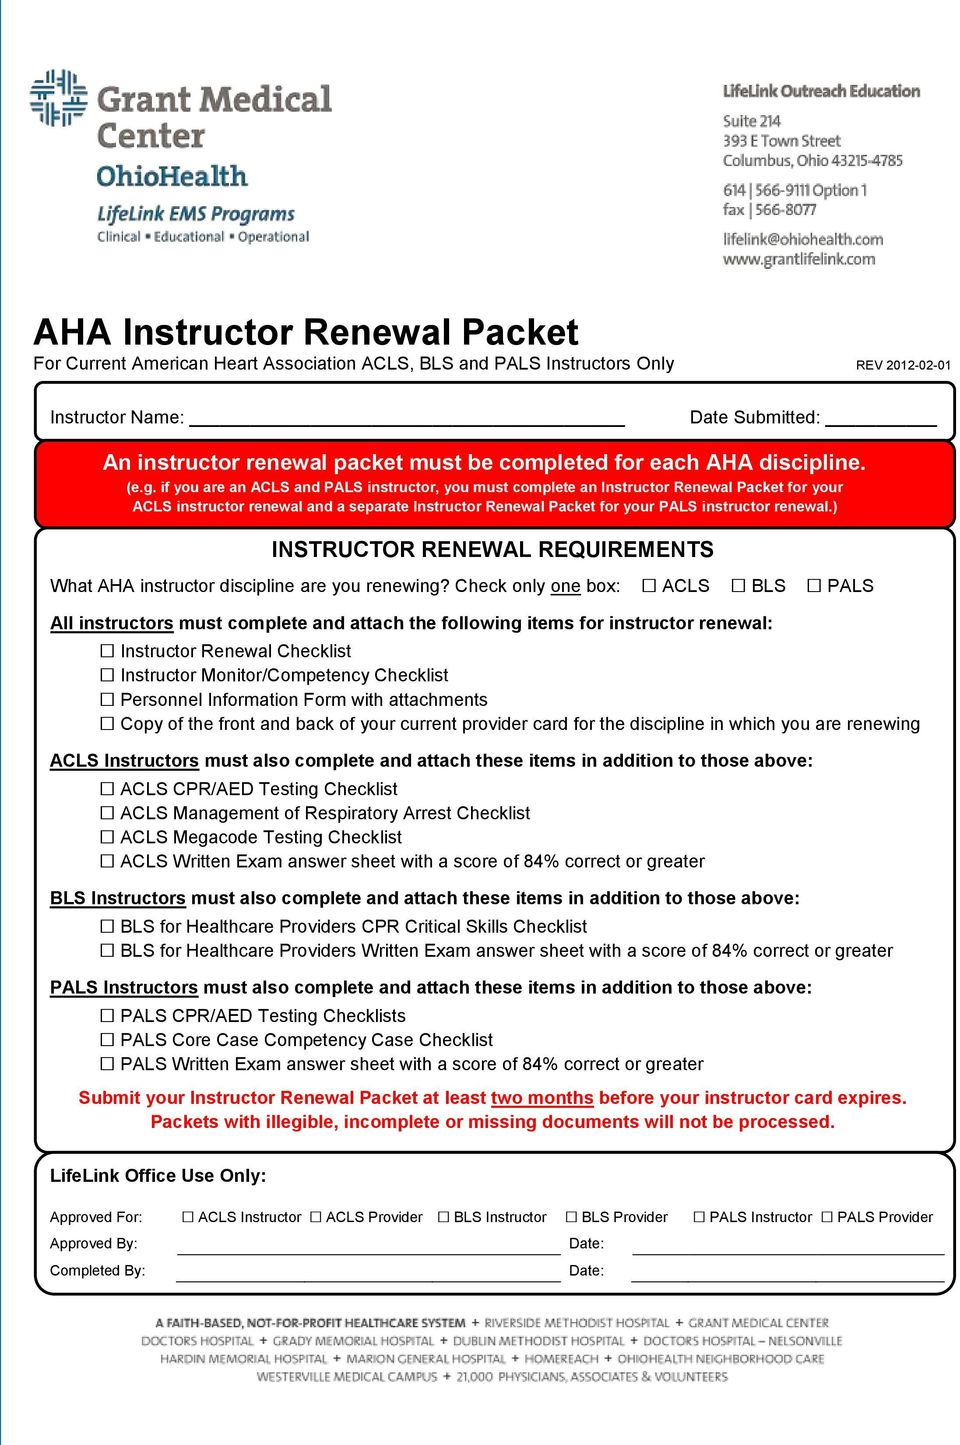 if you are an ACLS and PALS instructor, you must complete an Instructor Renewal Packet for your ACLS instructor renewal and a separate Instructor Renewal Packet for your PALS instructor renewal.